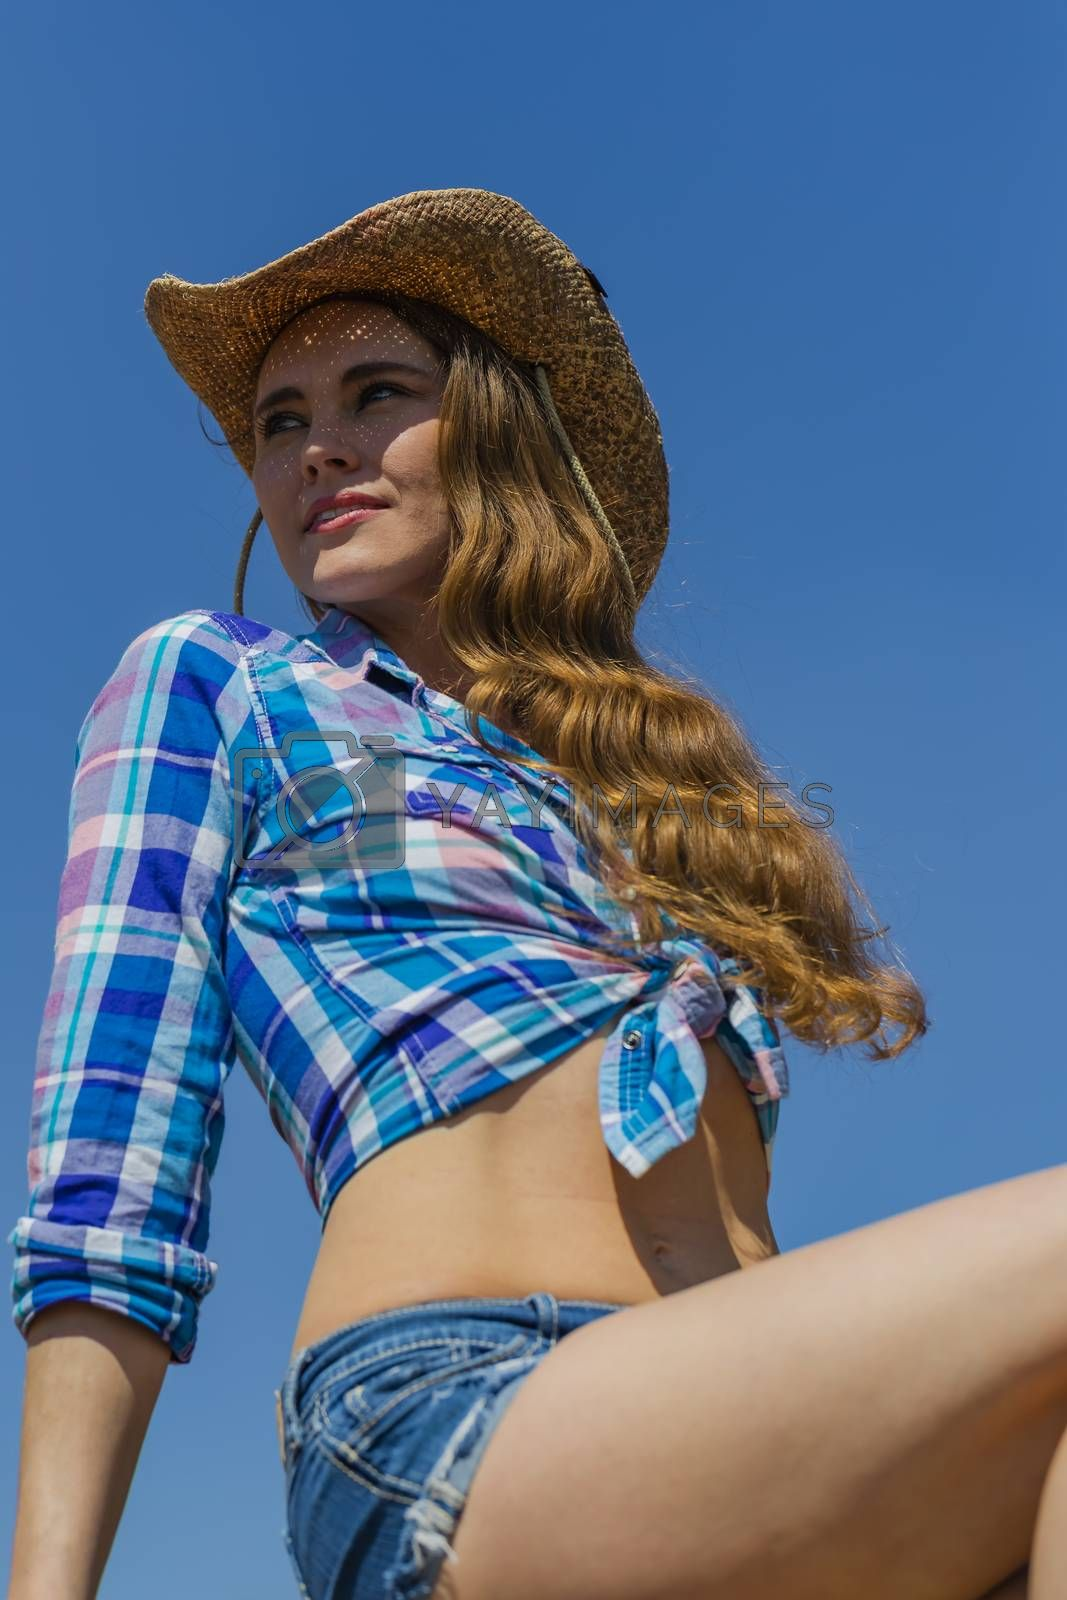 A Lovely Hispanic Brunette Model Poses Outdoors On A Mexican Ranch by actionsports